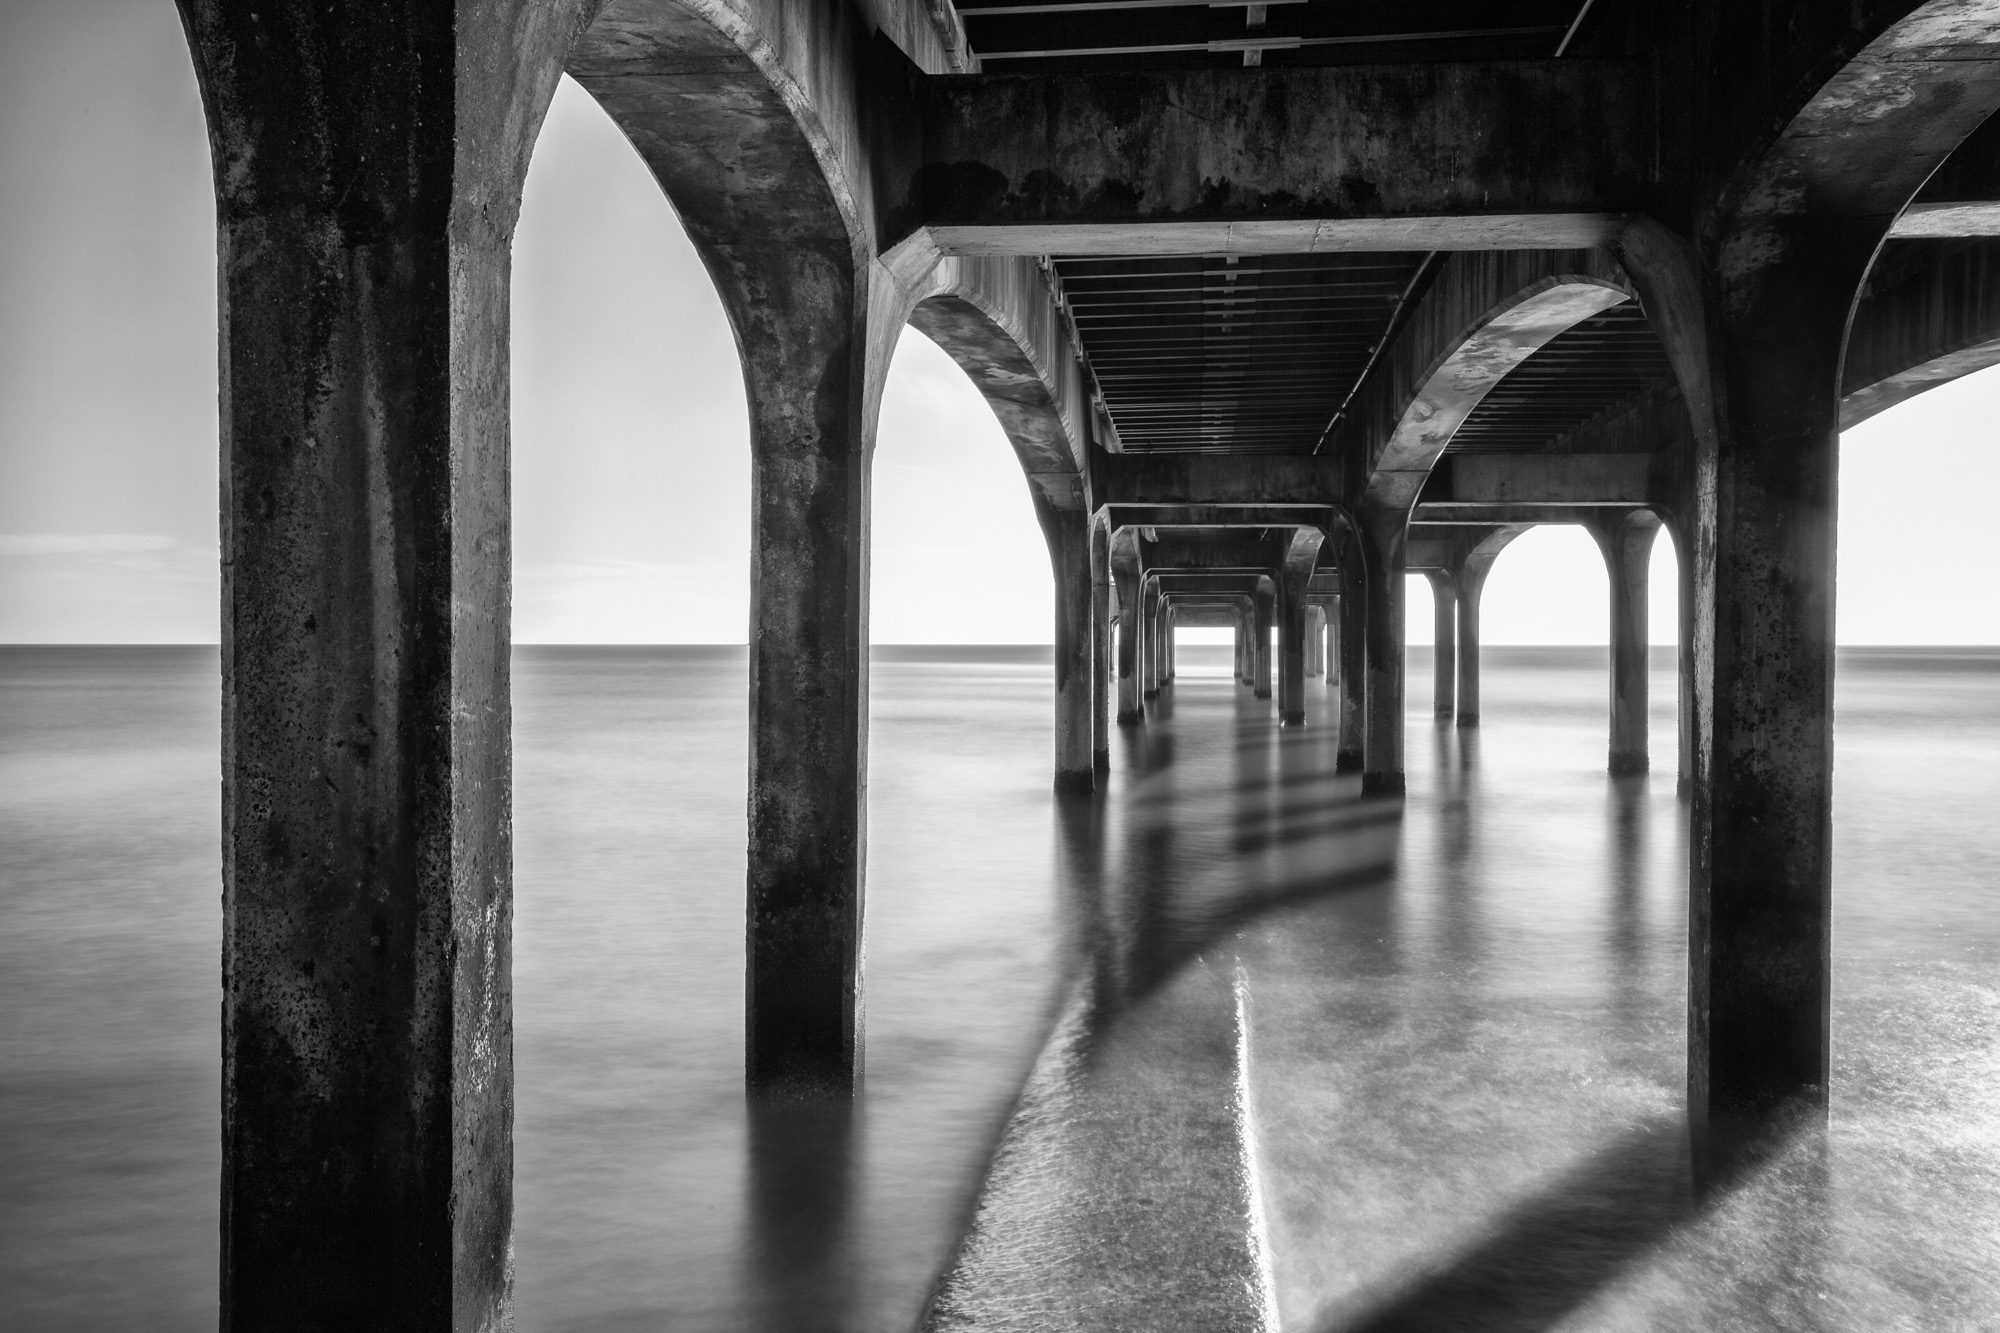 antonyz long exposure architecture photograph under wooden victorian jetty pier in the UK